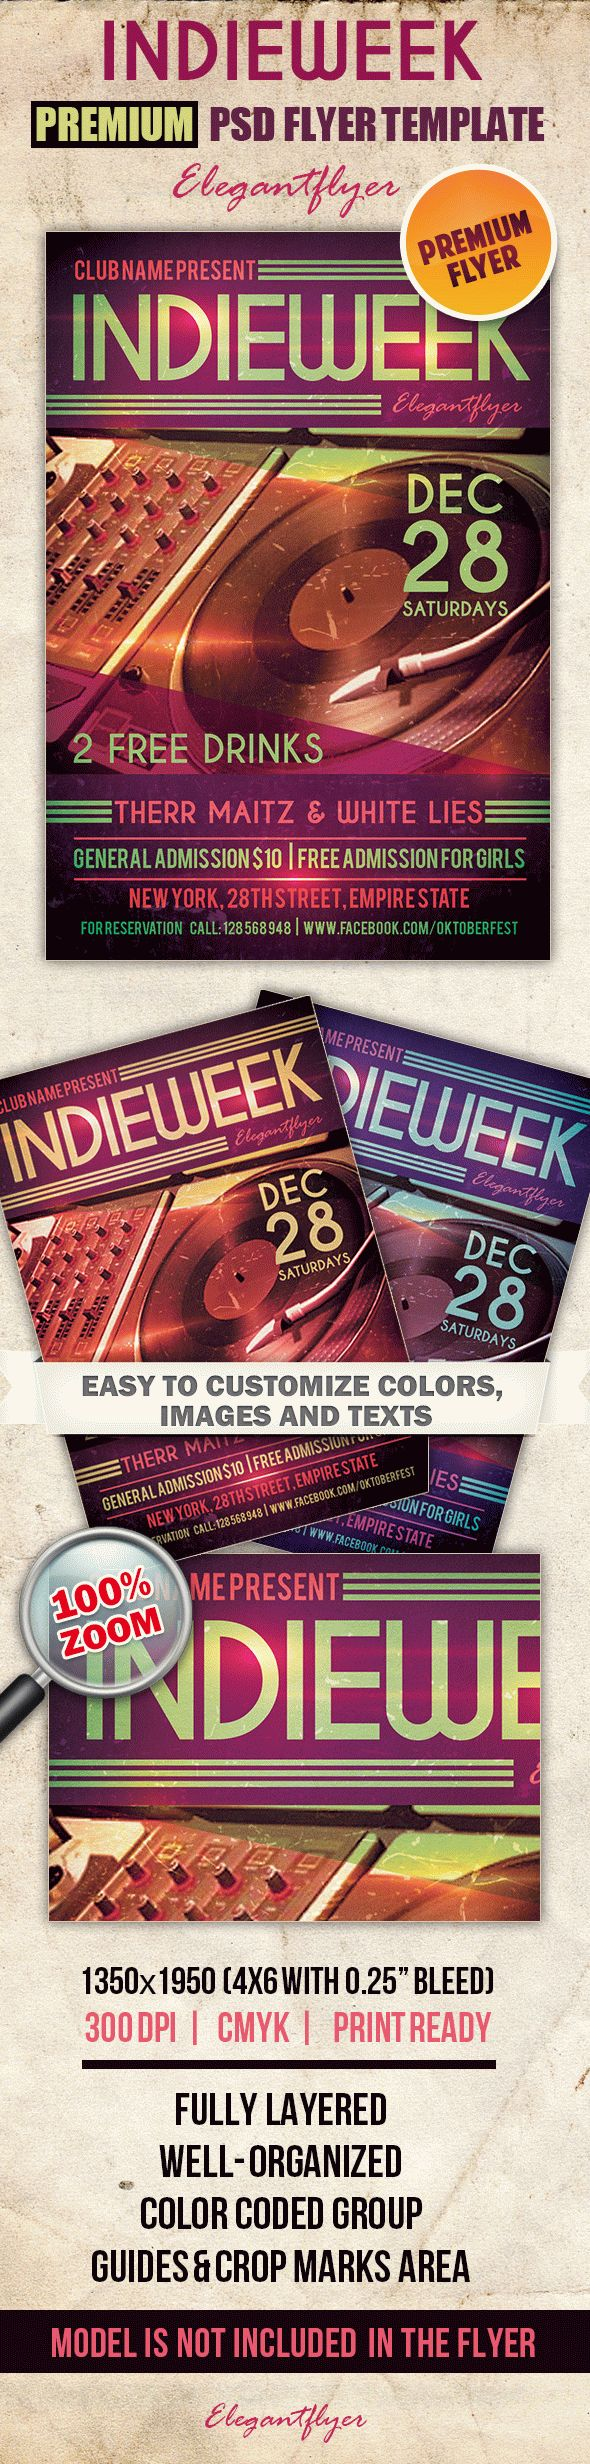 Indieweek – Premium Club flyer PSD Template